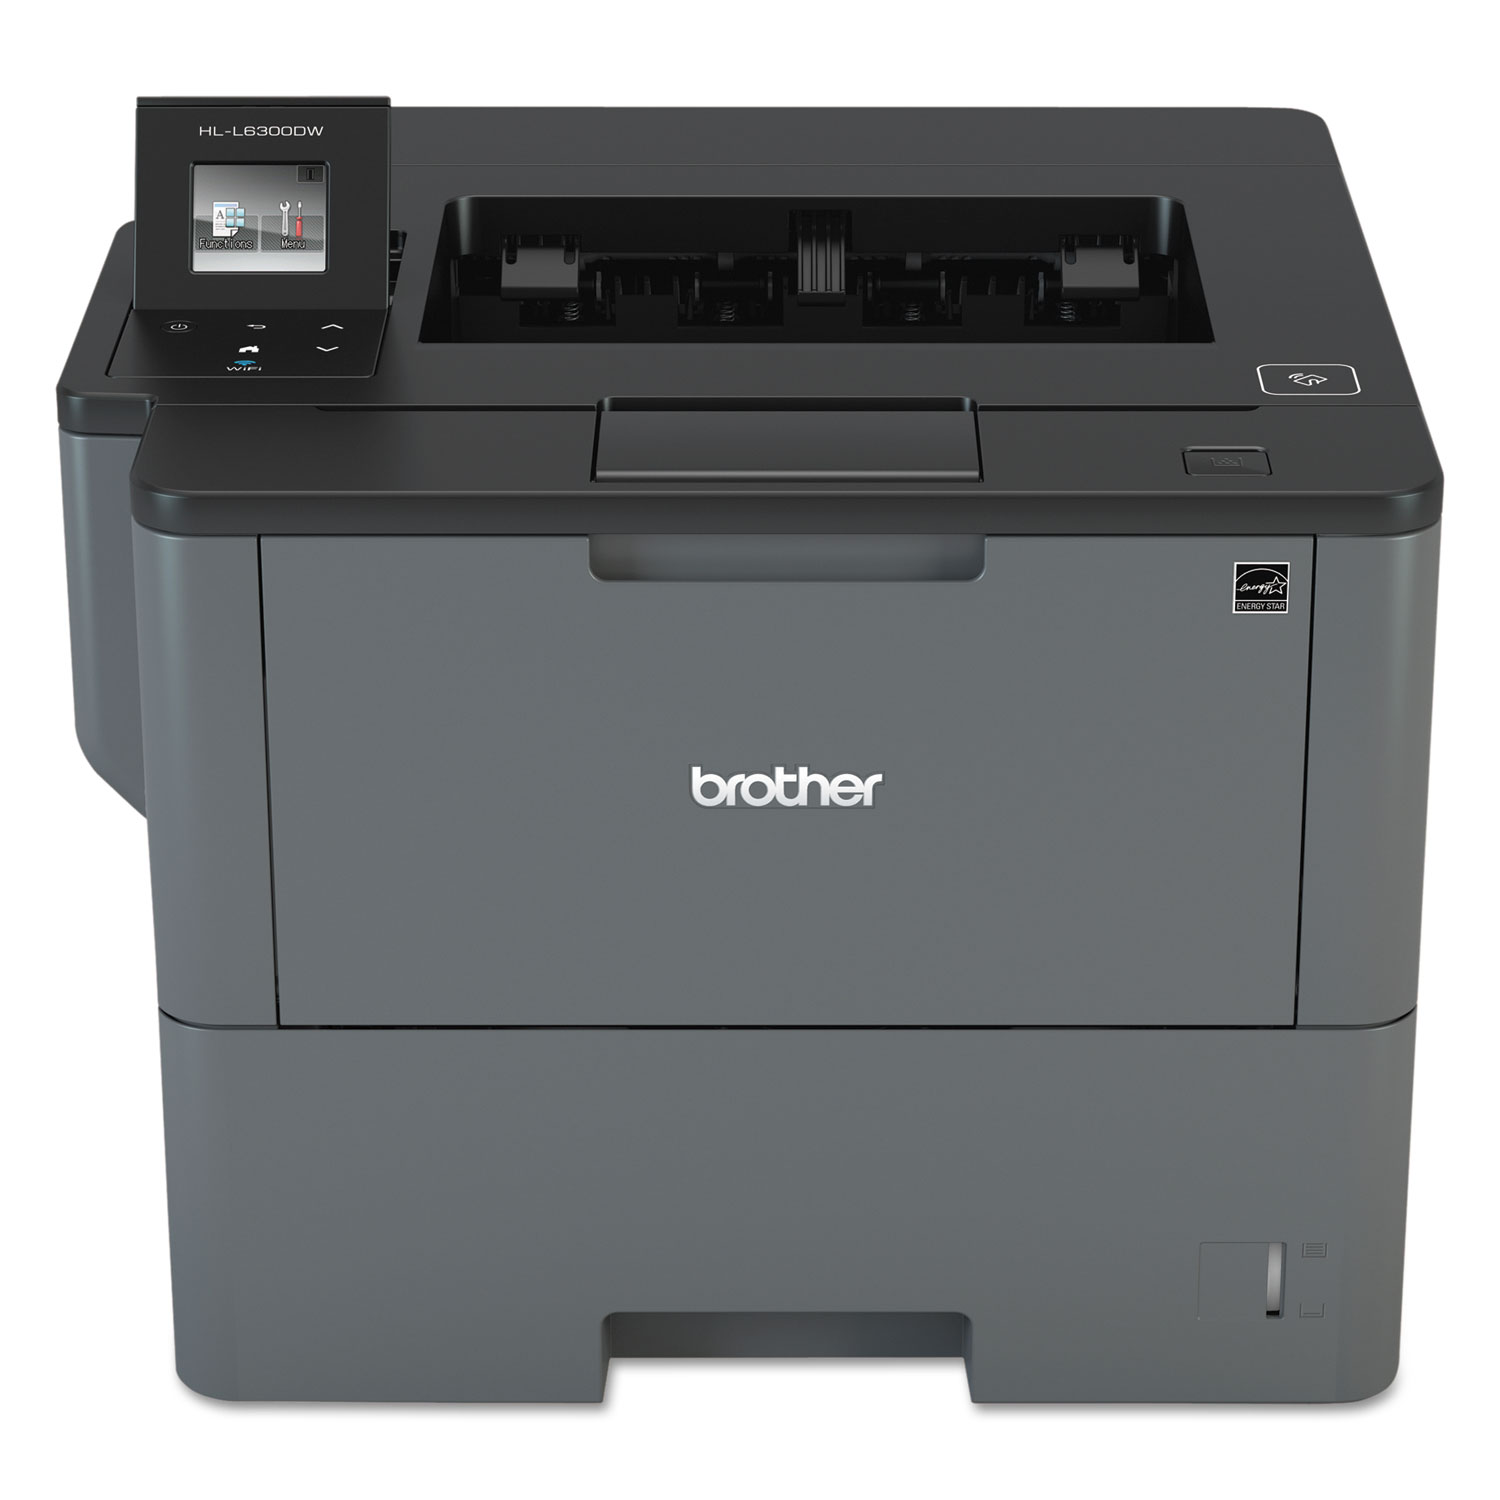 HL-L6300DW Business Laser Printer For Mid-Size Workgroups W/Higher Print Volumes